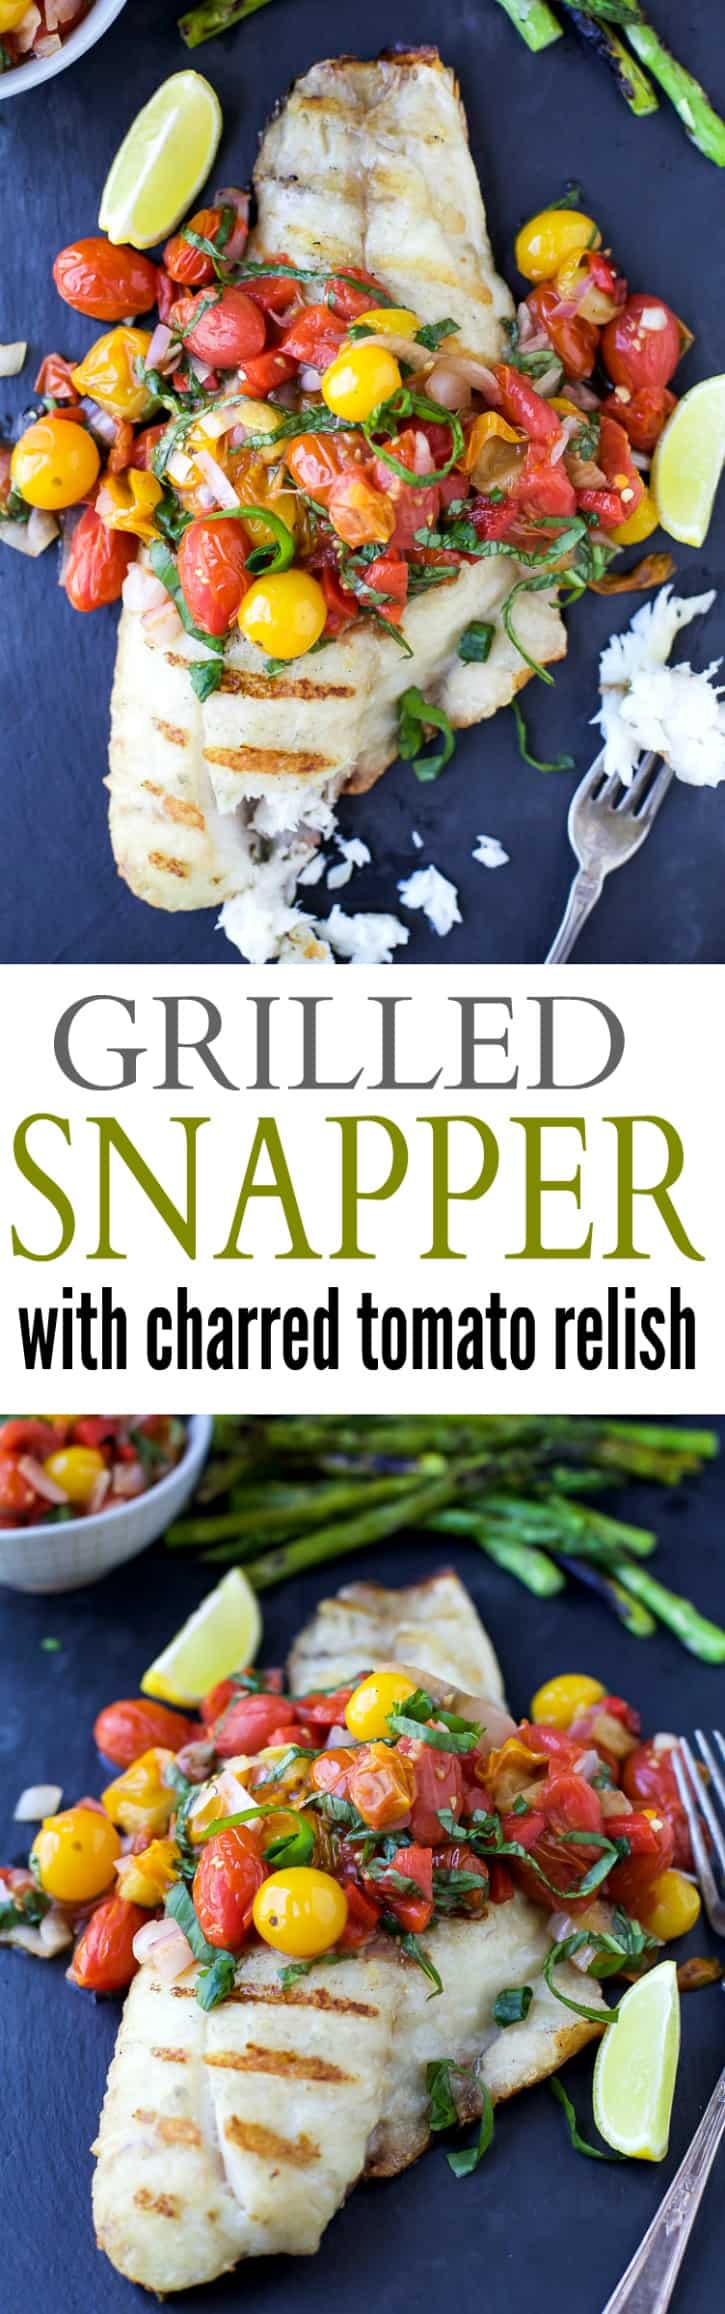 Grilled Red Snapper topped with a Roasted Red Pepper and Charred Tomato Relish for a light and fresh 30 Minute meal perfect for summer! | paleo recipes | gluten free